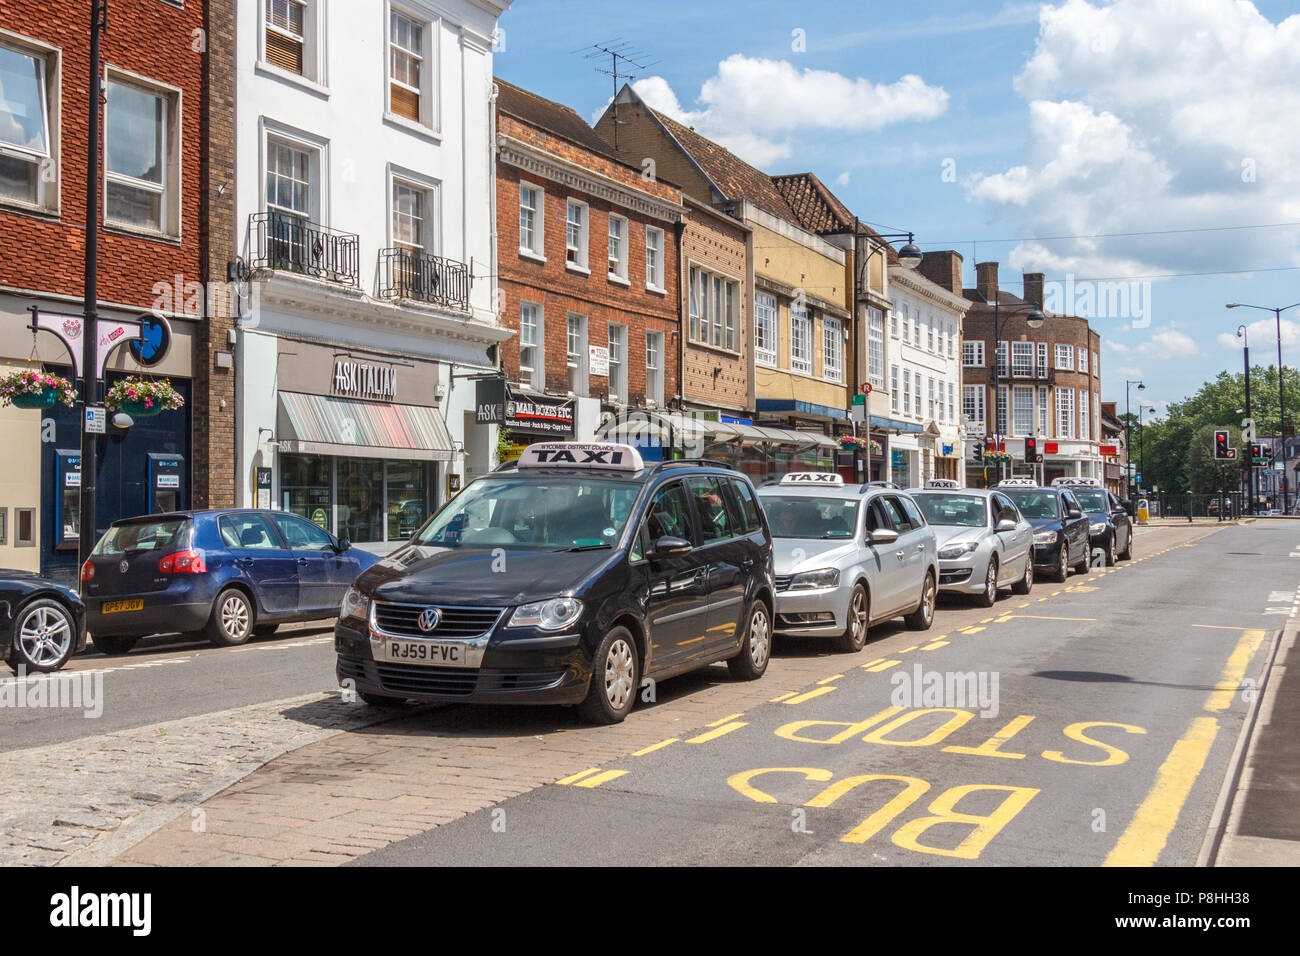 High Wycombe, UK - 3rd June 2018: Taxi cabs lines up at a taxi rank on High street. The official rank is where taxis are allowed to wait for passenger - Stock Image